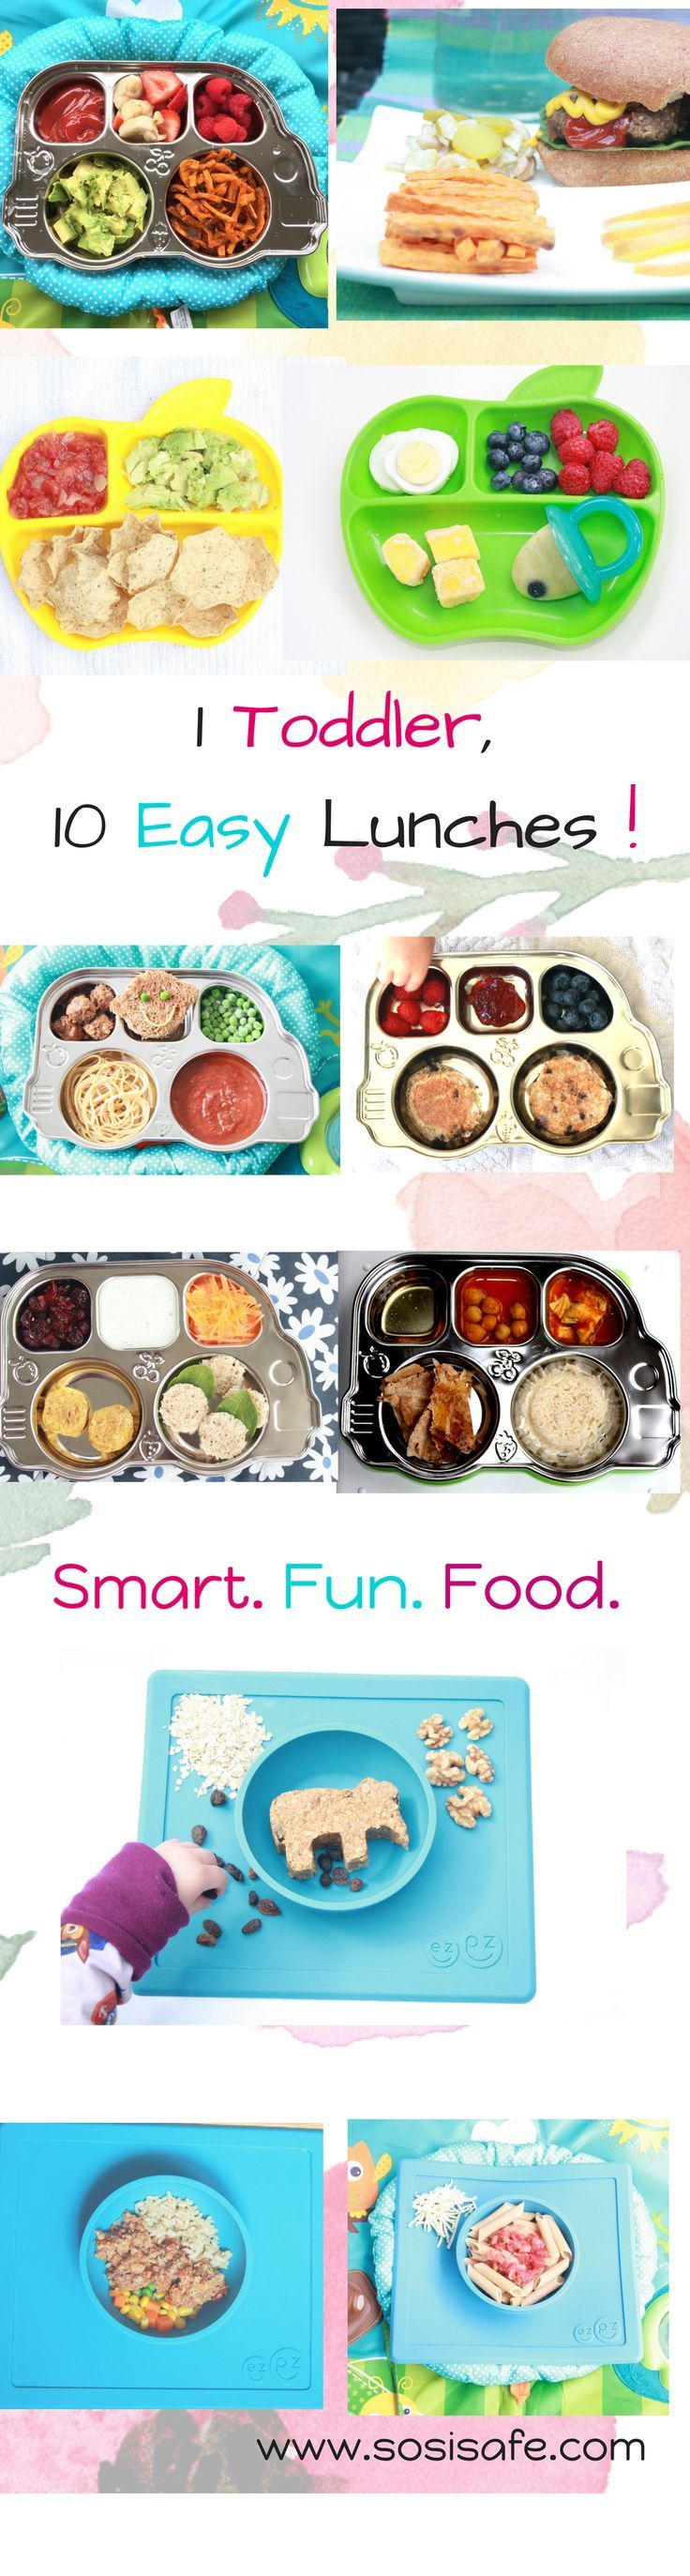 10 Easy Toddler meals. Healthy toddler meals for the Food Allergy Family. Peanut free, milk free with real ingredients.